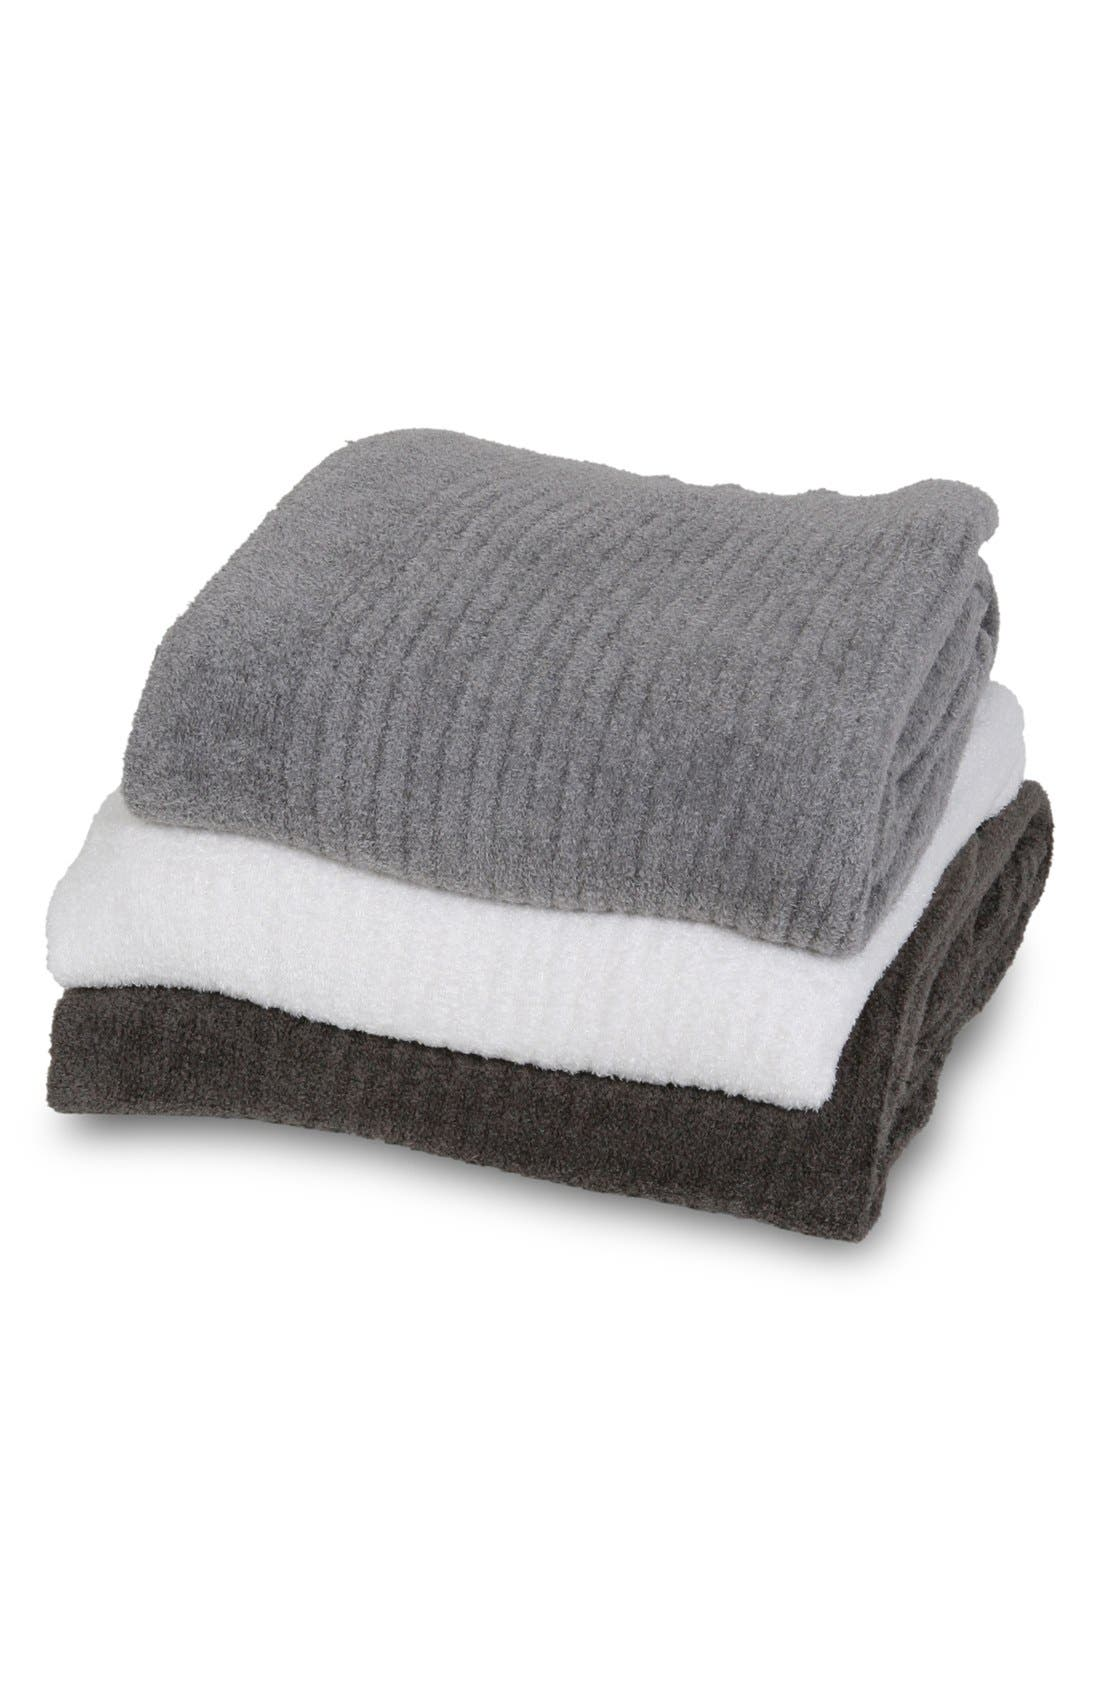 CozyChic Light Ribbed Throw,                             Alternate thumbnail 3, color,                             CARBON